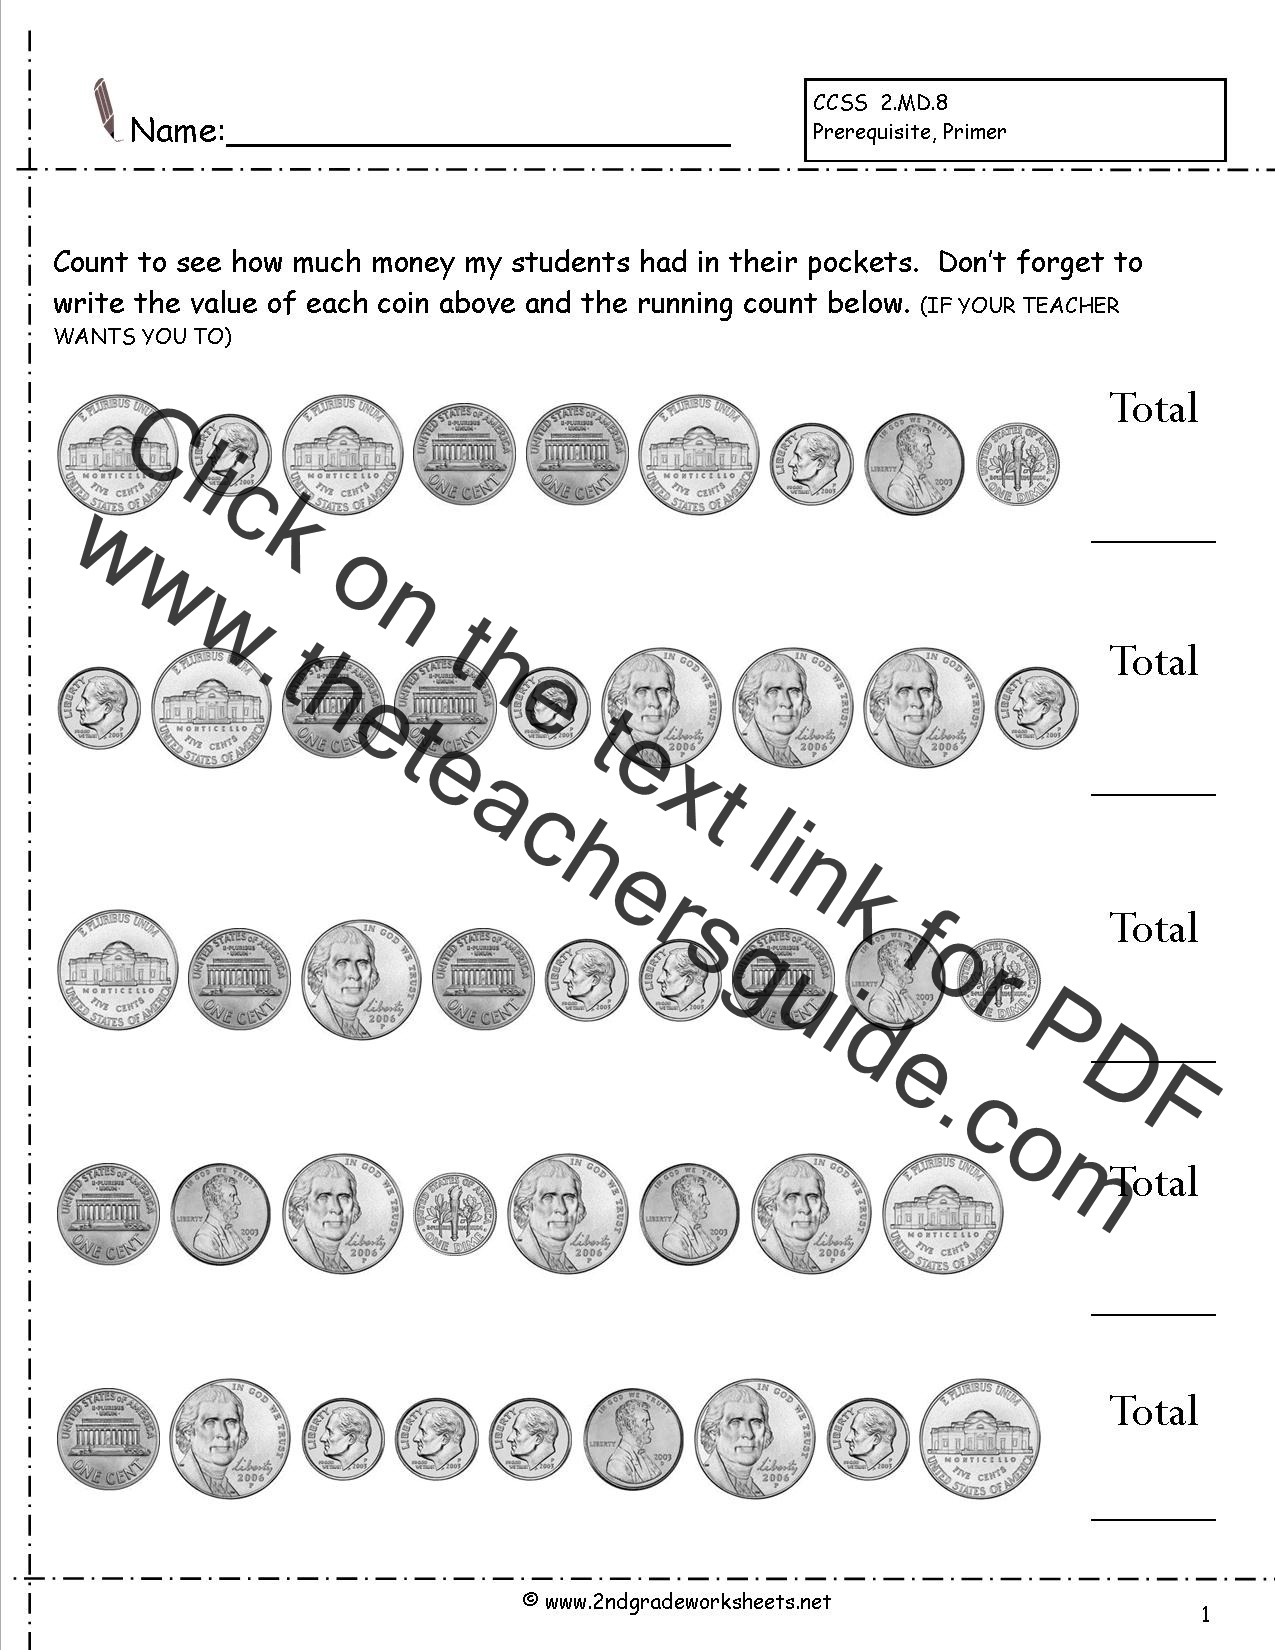 Worksheets Counting Nickels Worksheet ccss 2 md 8 worksheets counting coins money worksheet